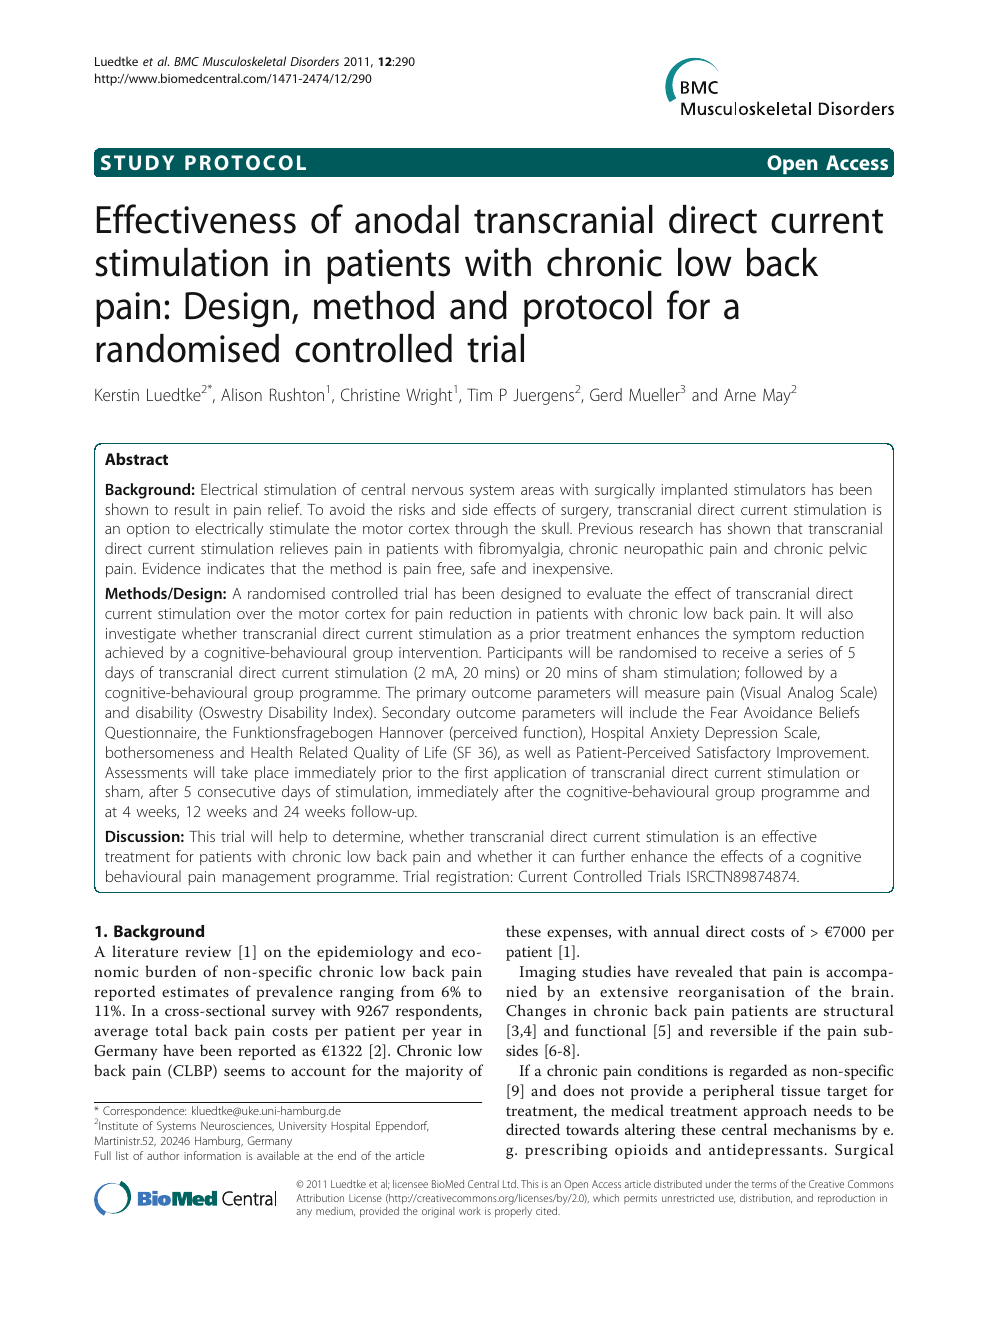 anodal direct current Effectiveness of transcranial zVSUpGqLM